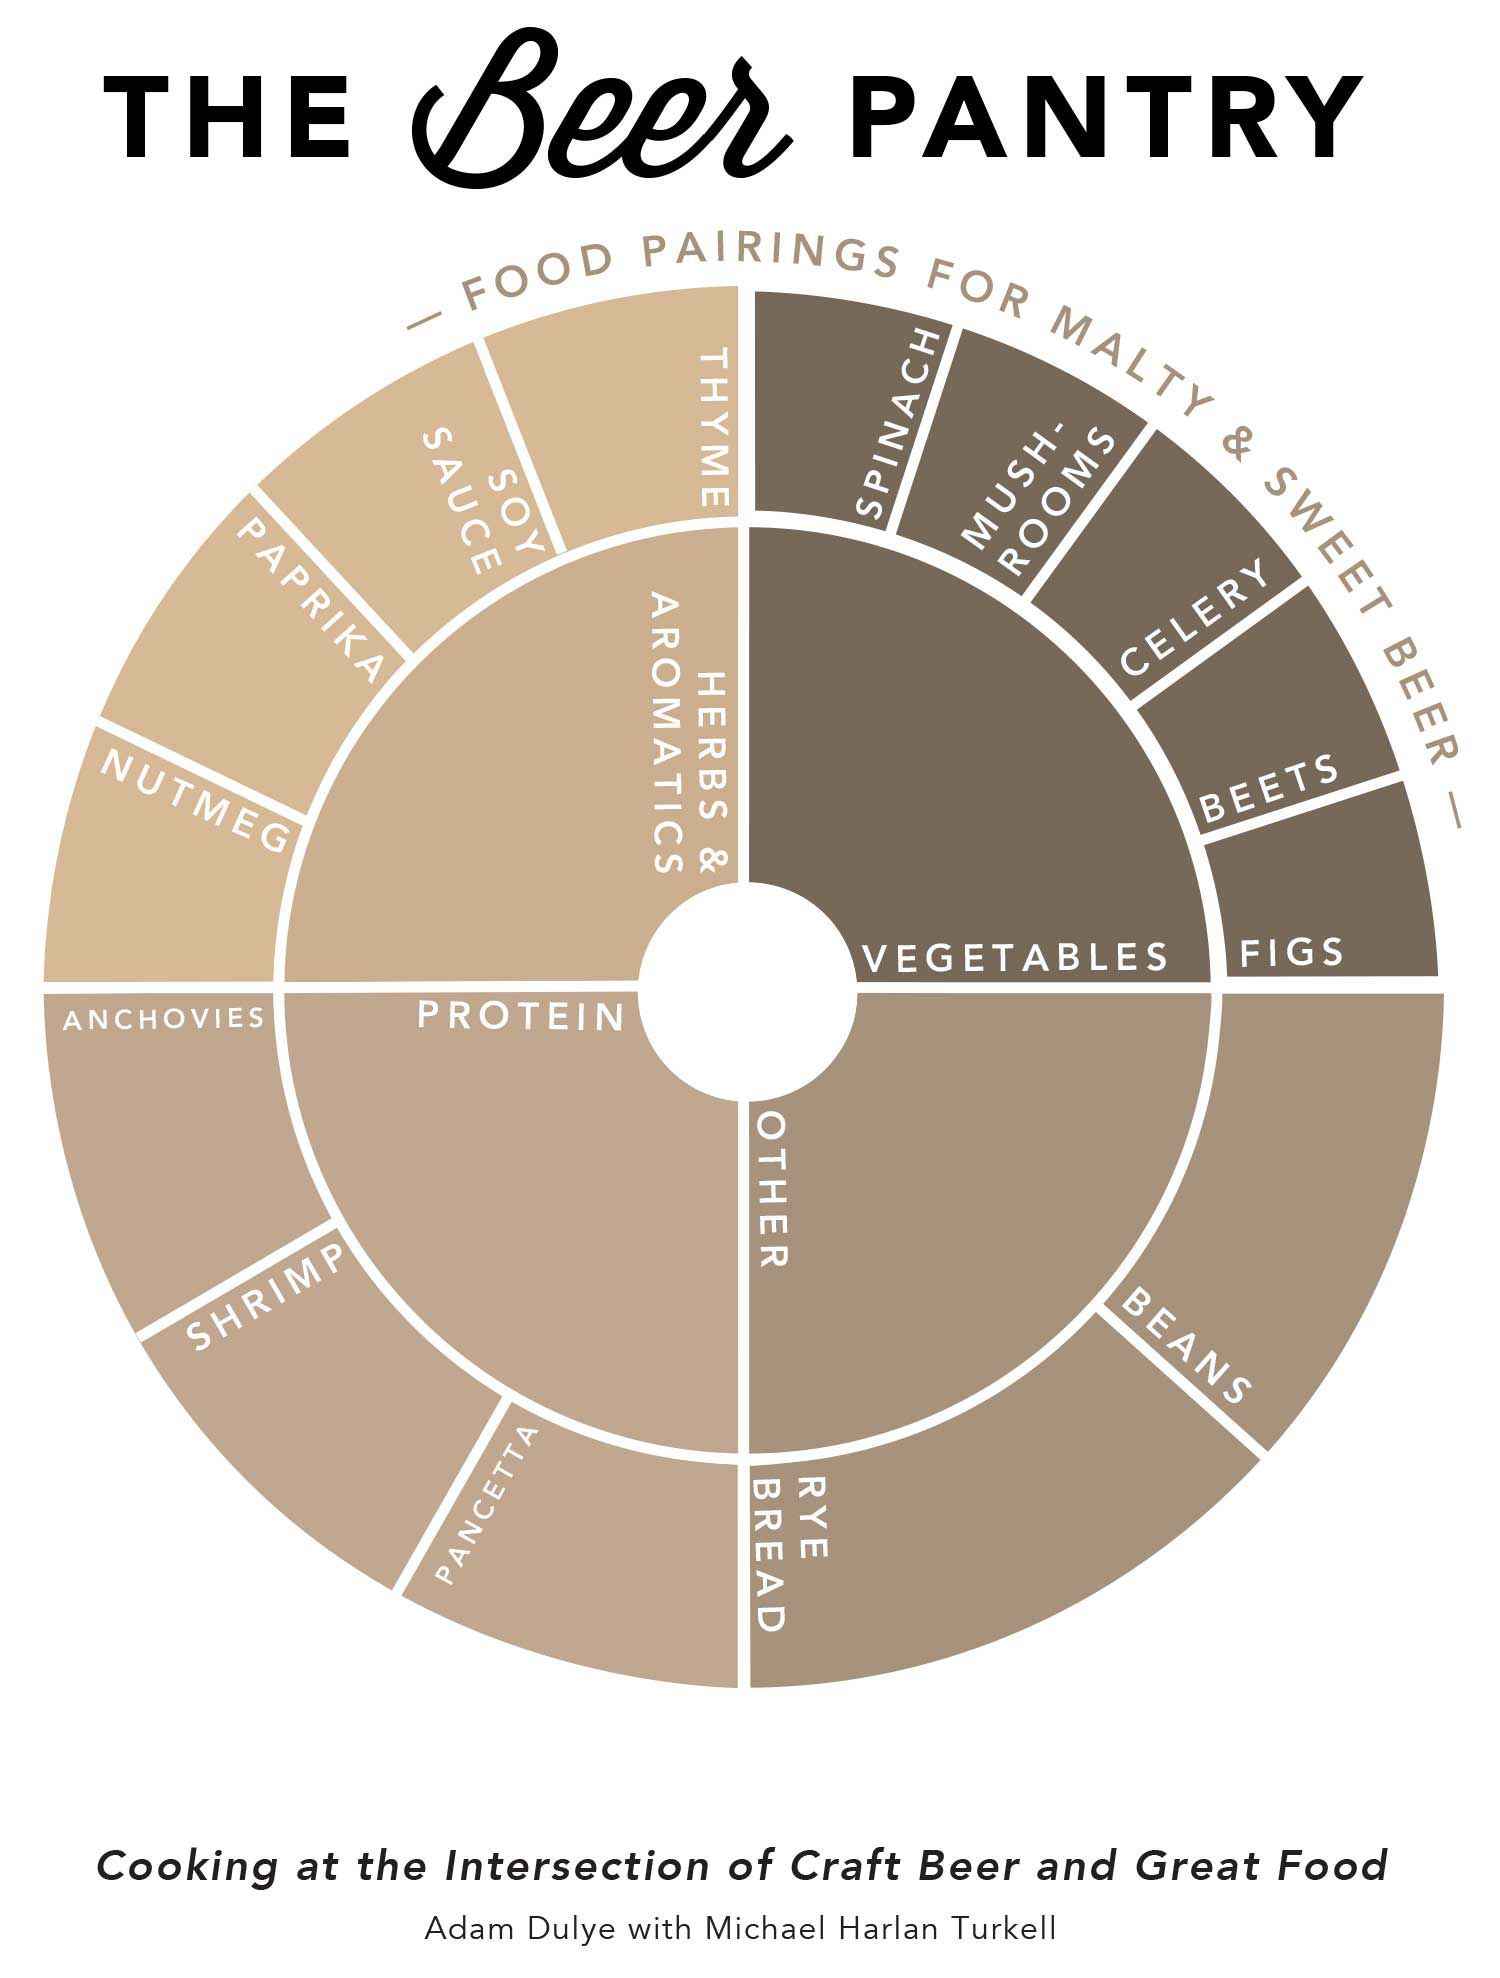 A wheel graphic showing the various flavors and foods that pair well with malty and sweet beers